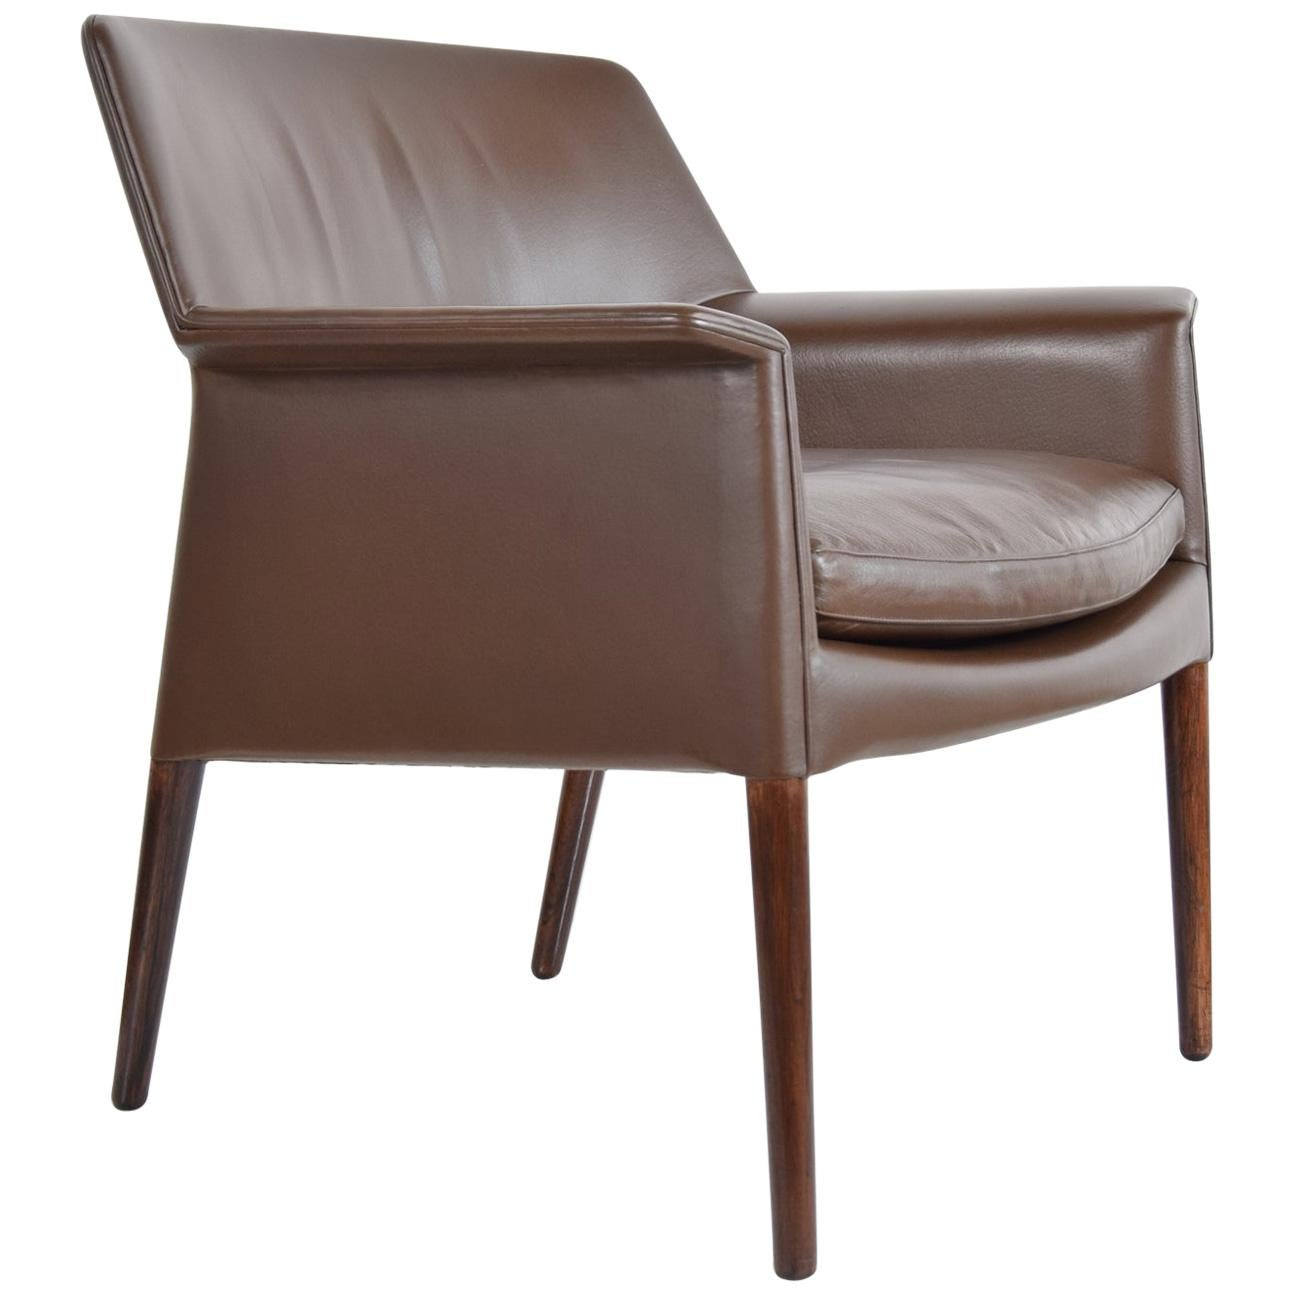 Lounge Chair in Leather and Rosewood by Larsen and Madsen